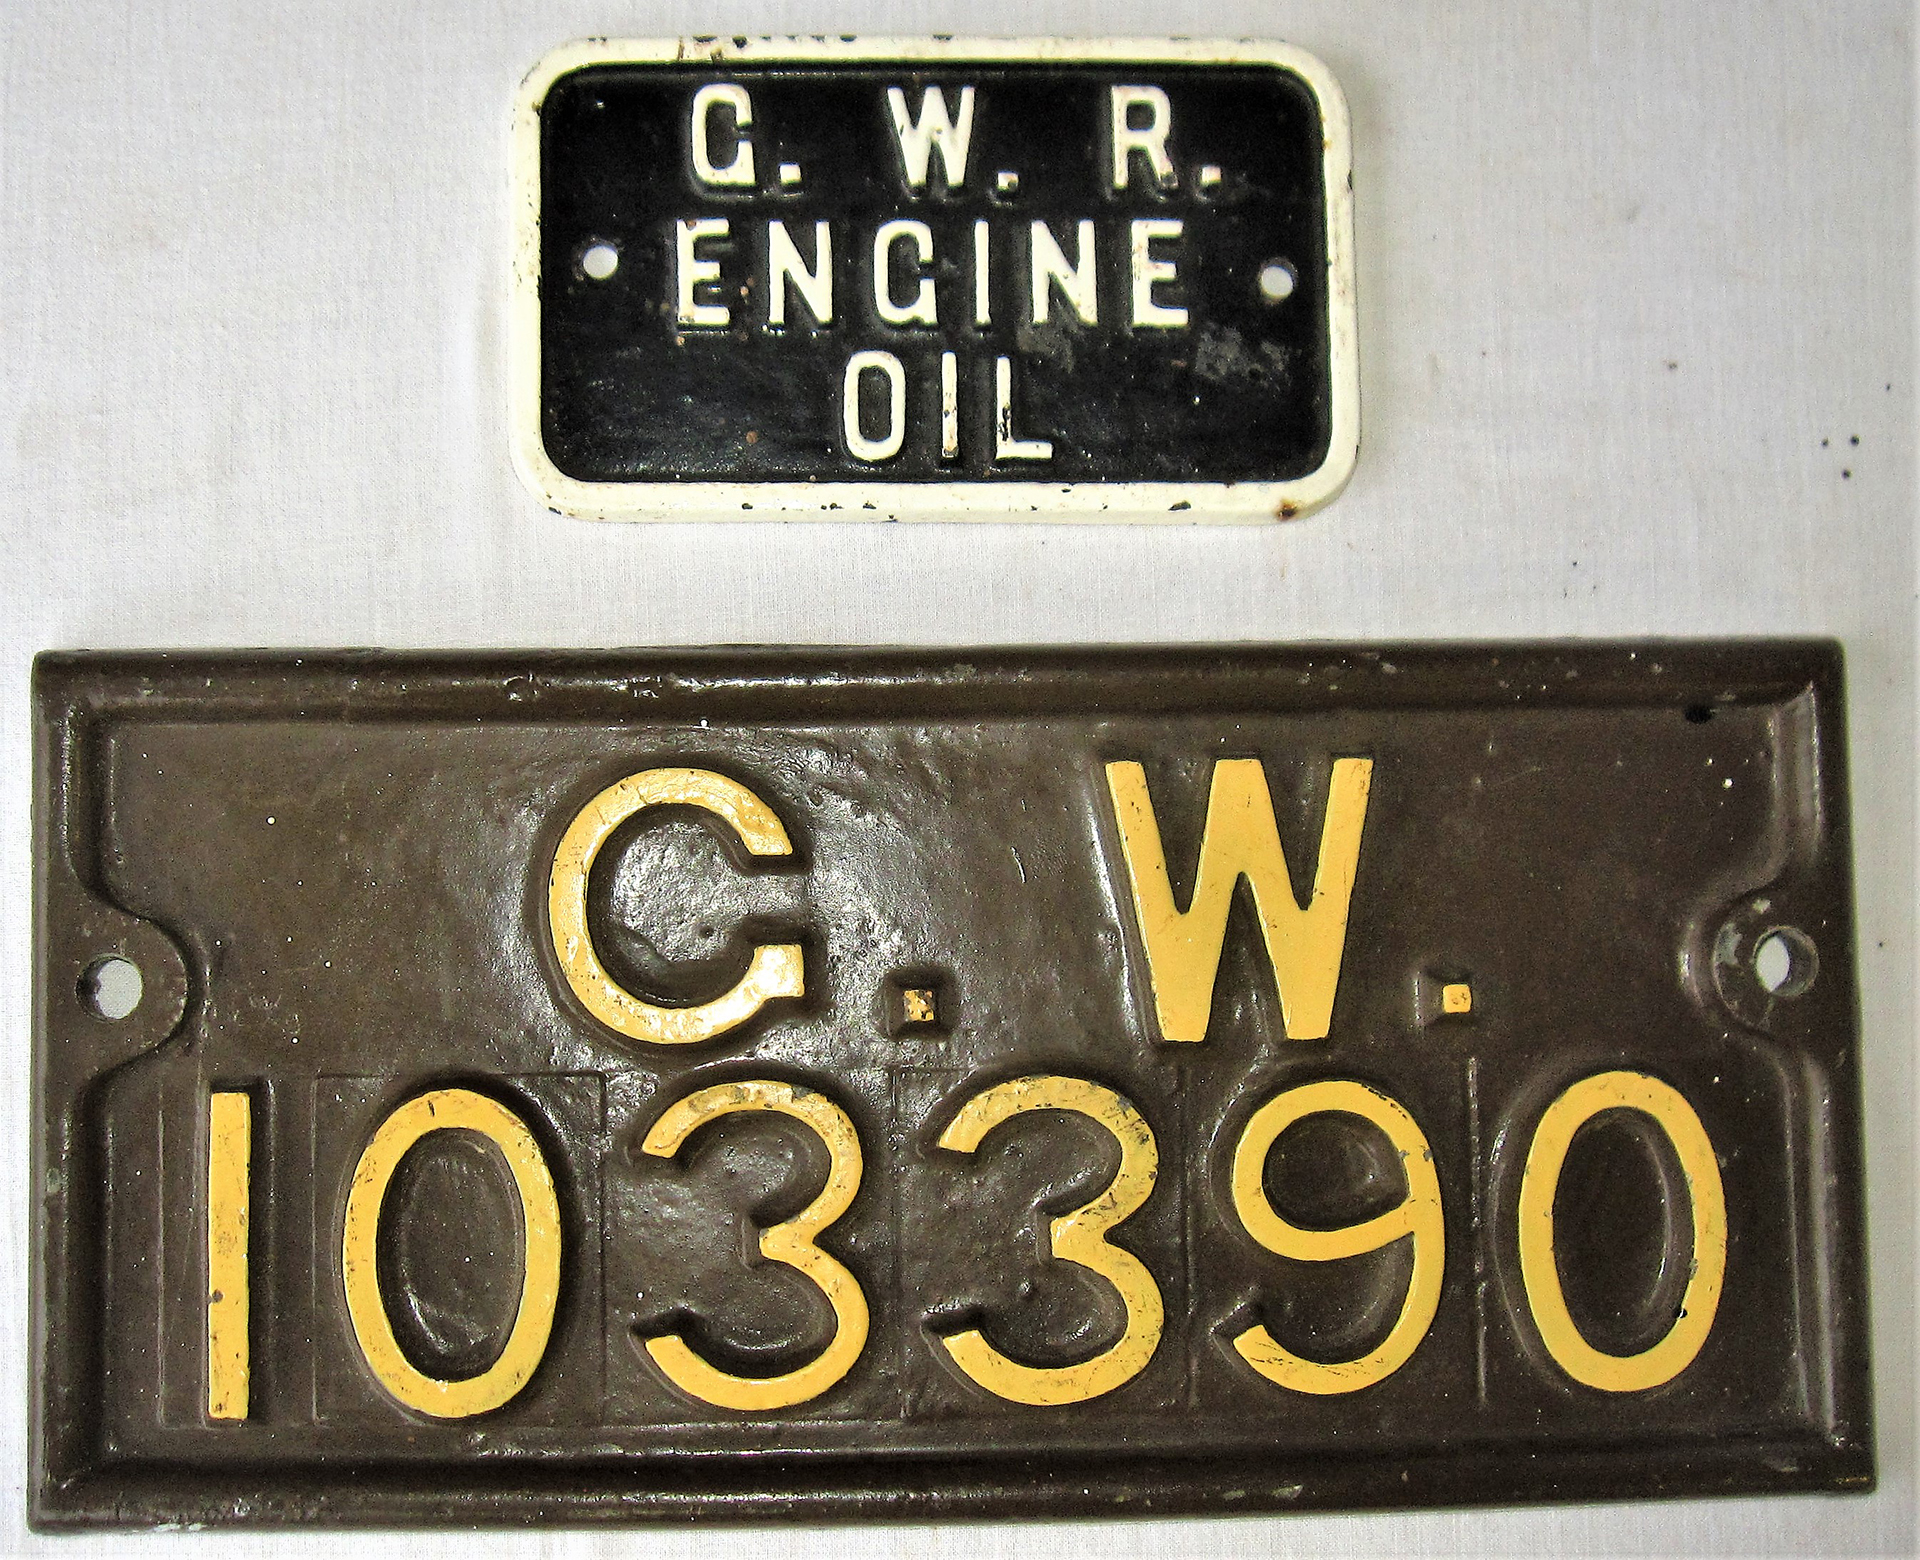 2 GWR cast iron plates. Wagon Plate G.W. 103390 together with GWR stores plate GWR ENGINE OIL.